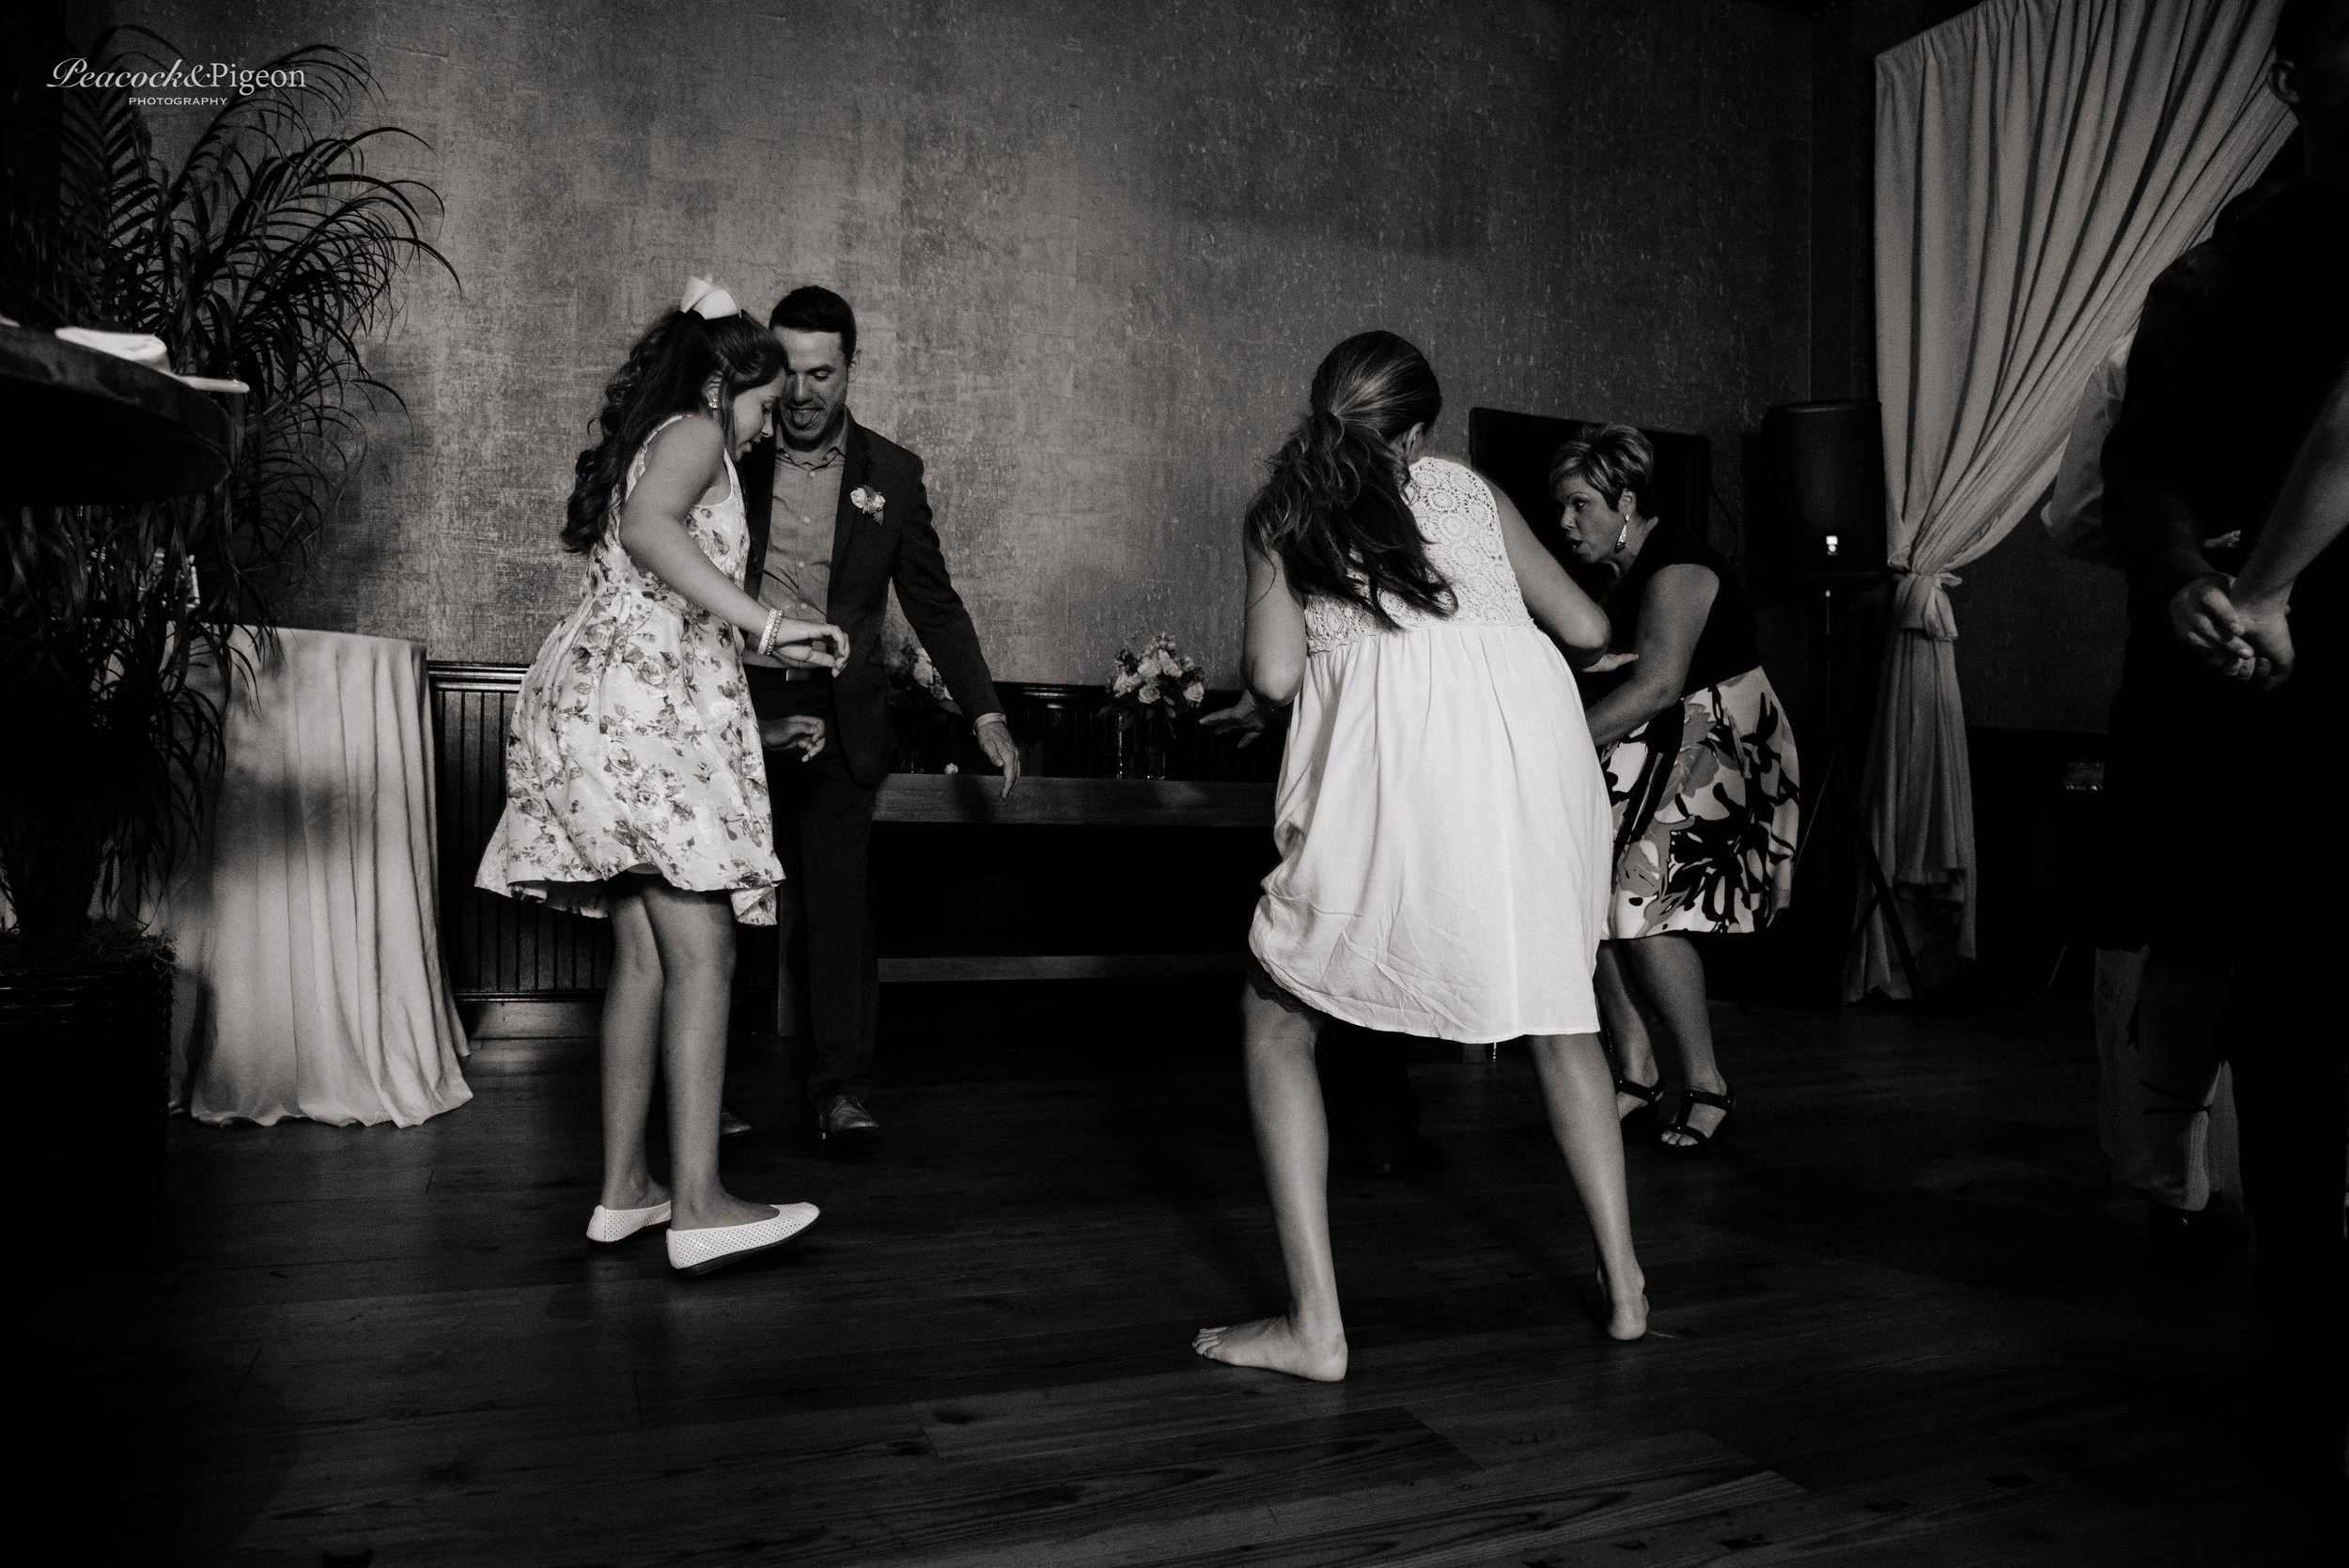 Callum_and_Sara's_Wedding_at_the_Cork_Factory_Hotel_in_Lancaster_Part_Eleven_Dancing_Continued_Black_and_White_Watermarked-53.jpg